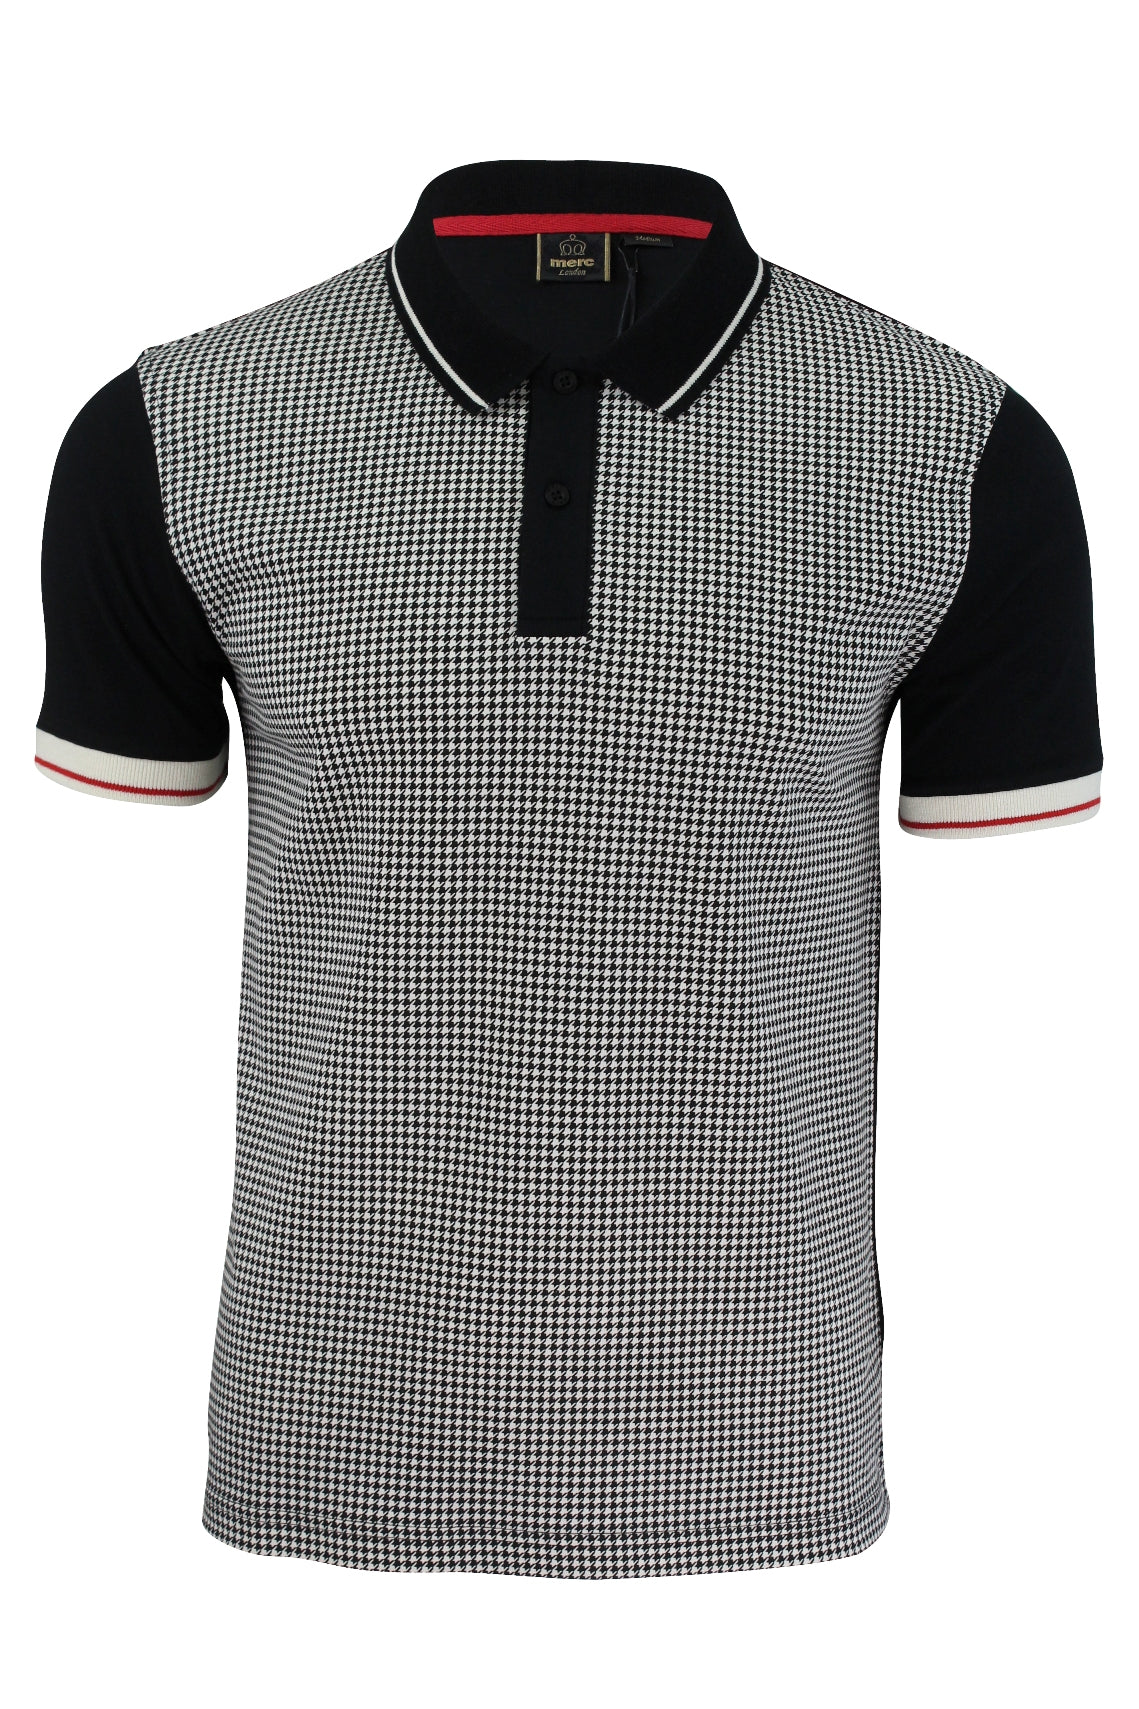 Mens Polo T-Shirt by Merc London 'Corona' Dog Tooth Front Short Sleeved-Main Image